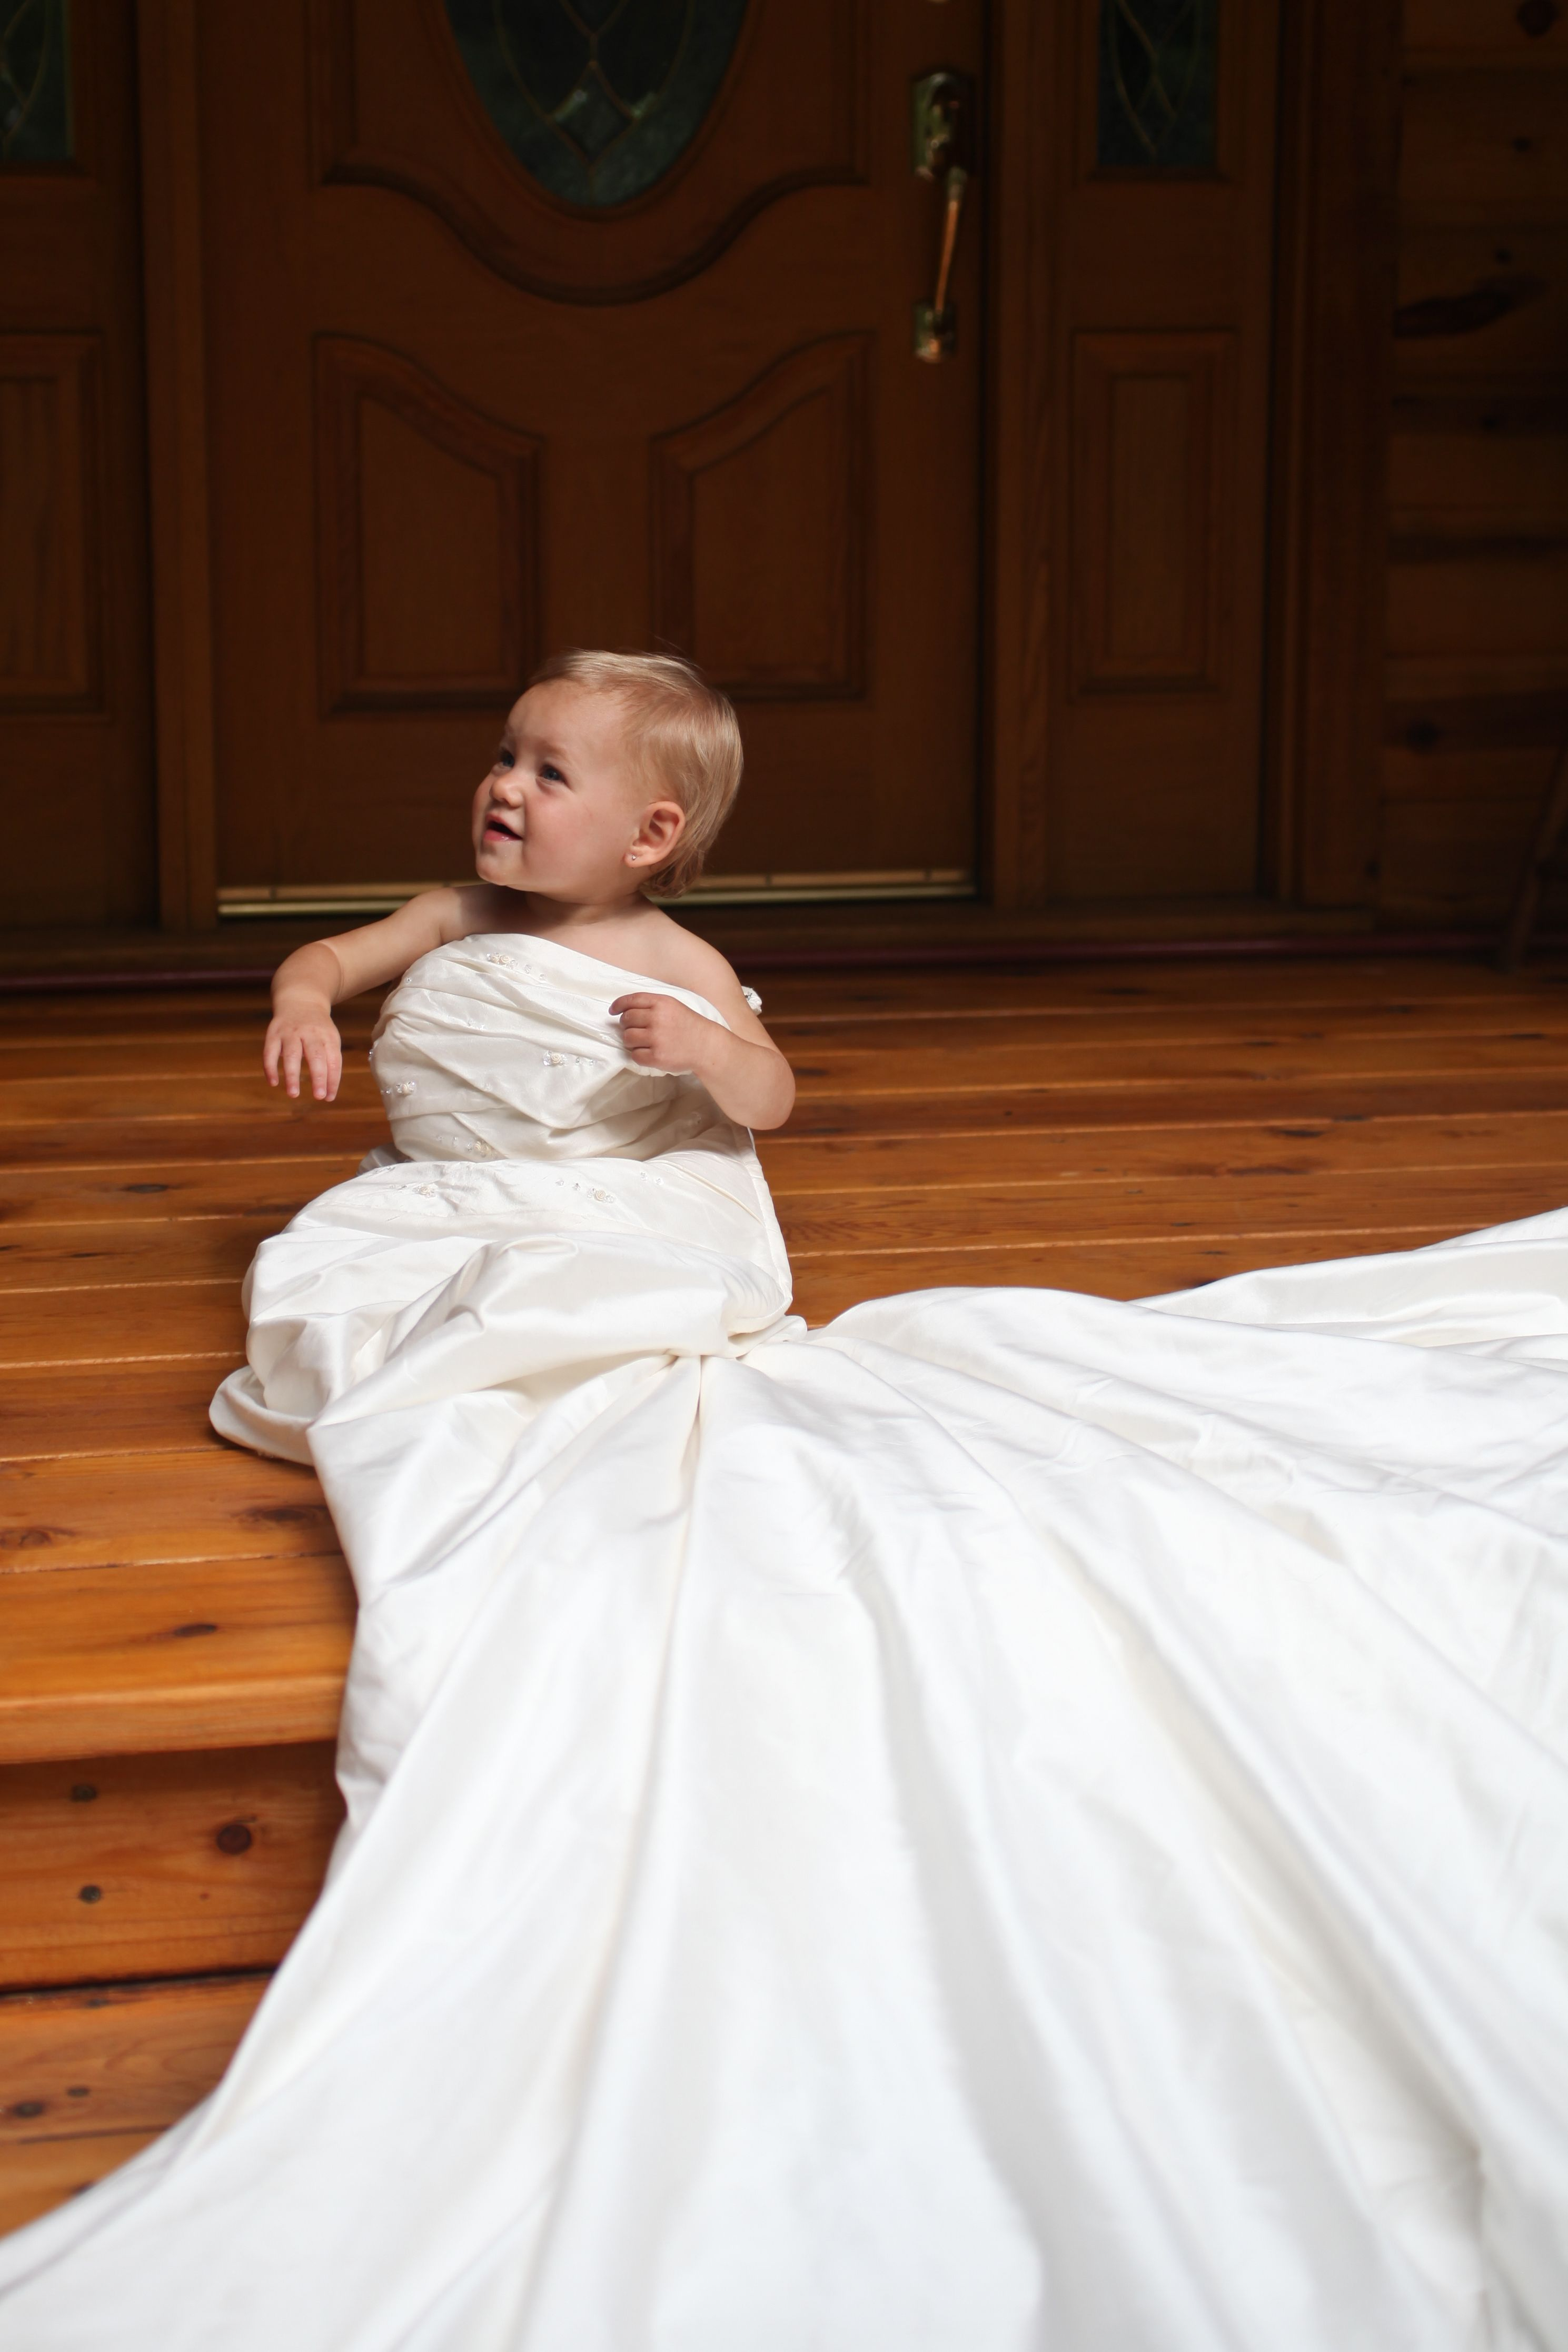 my daughter Elle in my wedding dress. I plan to take this picture ...